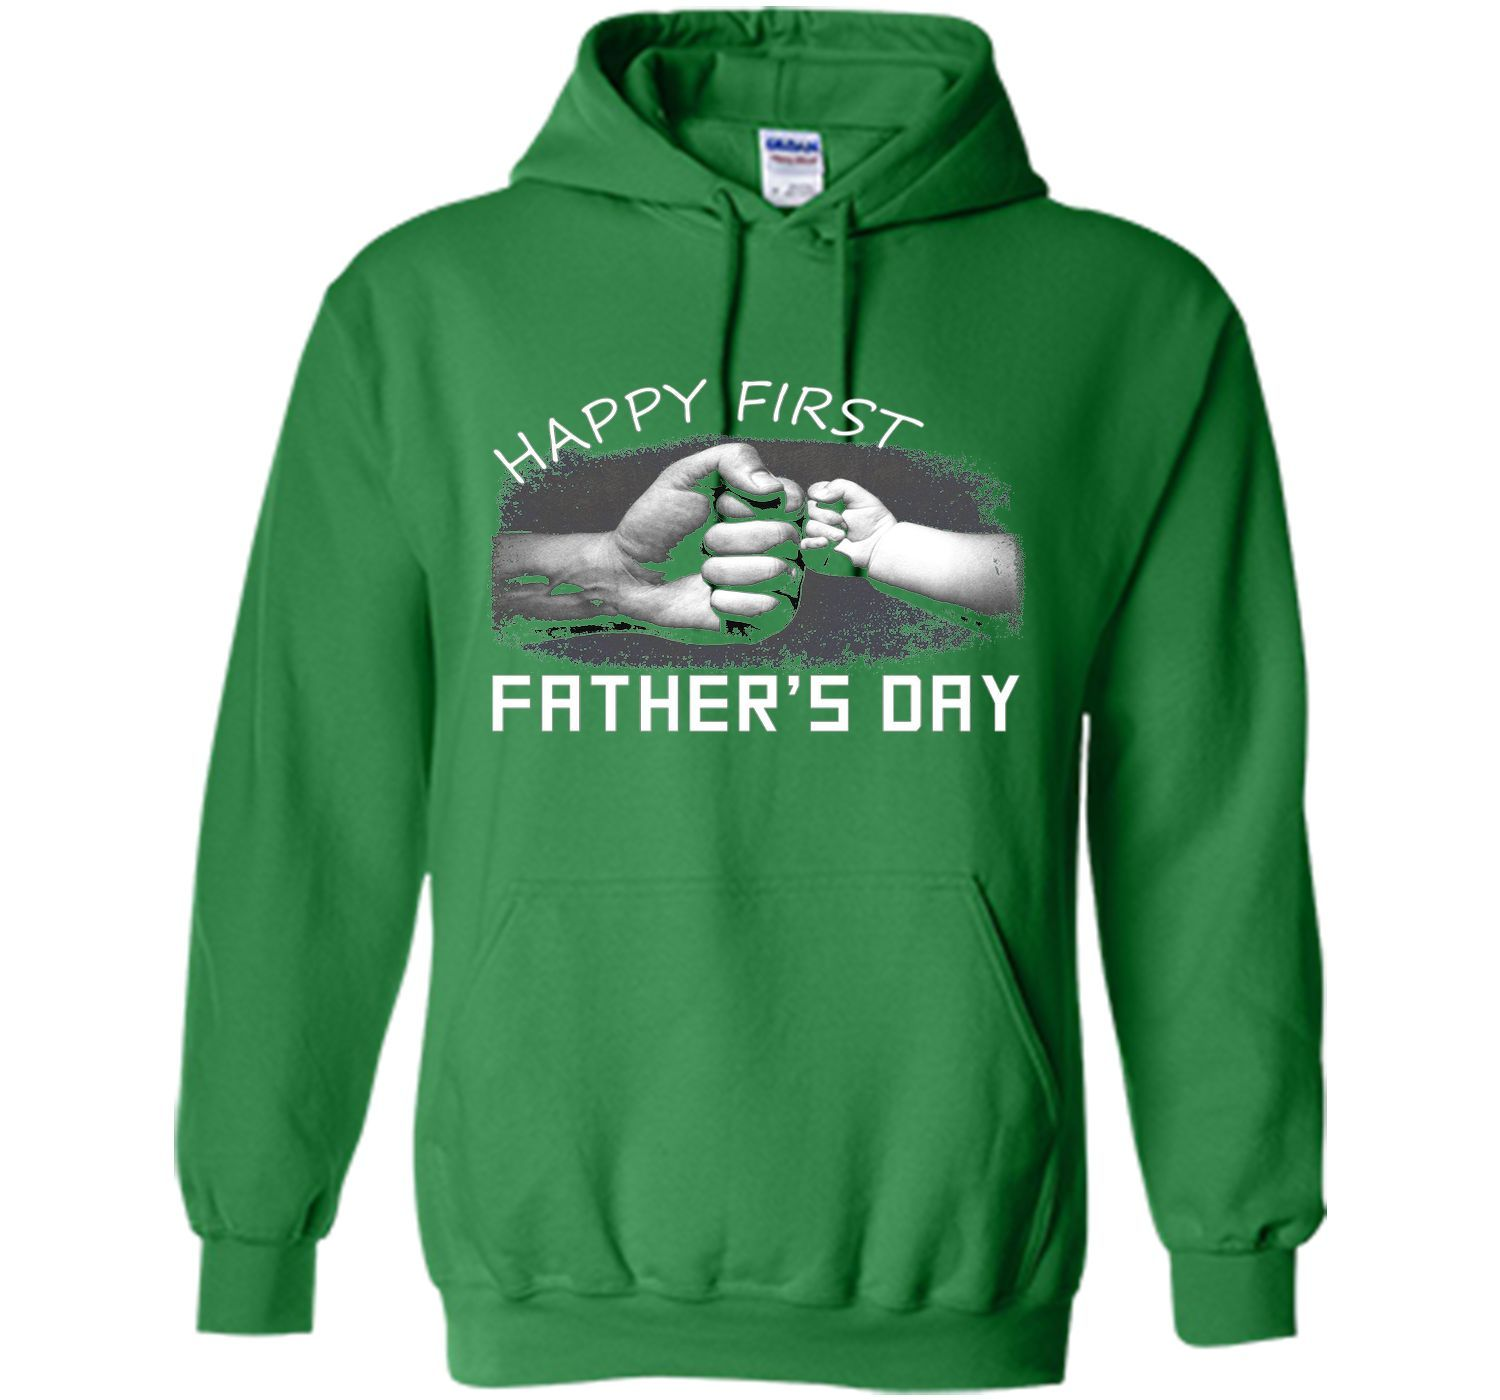 Happy first Father's Day T Shirt Unisex hoodies, Cool